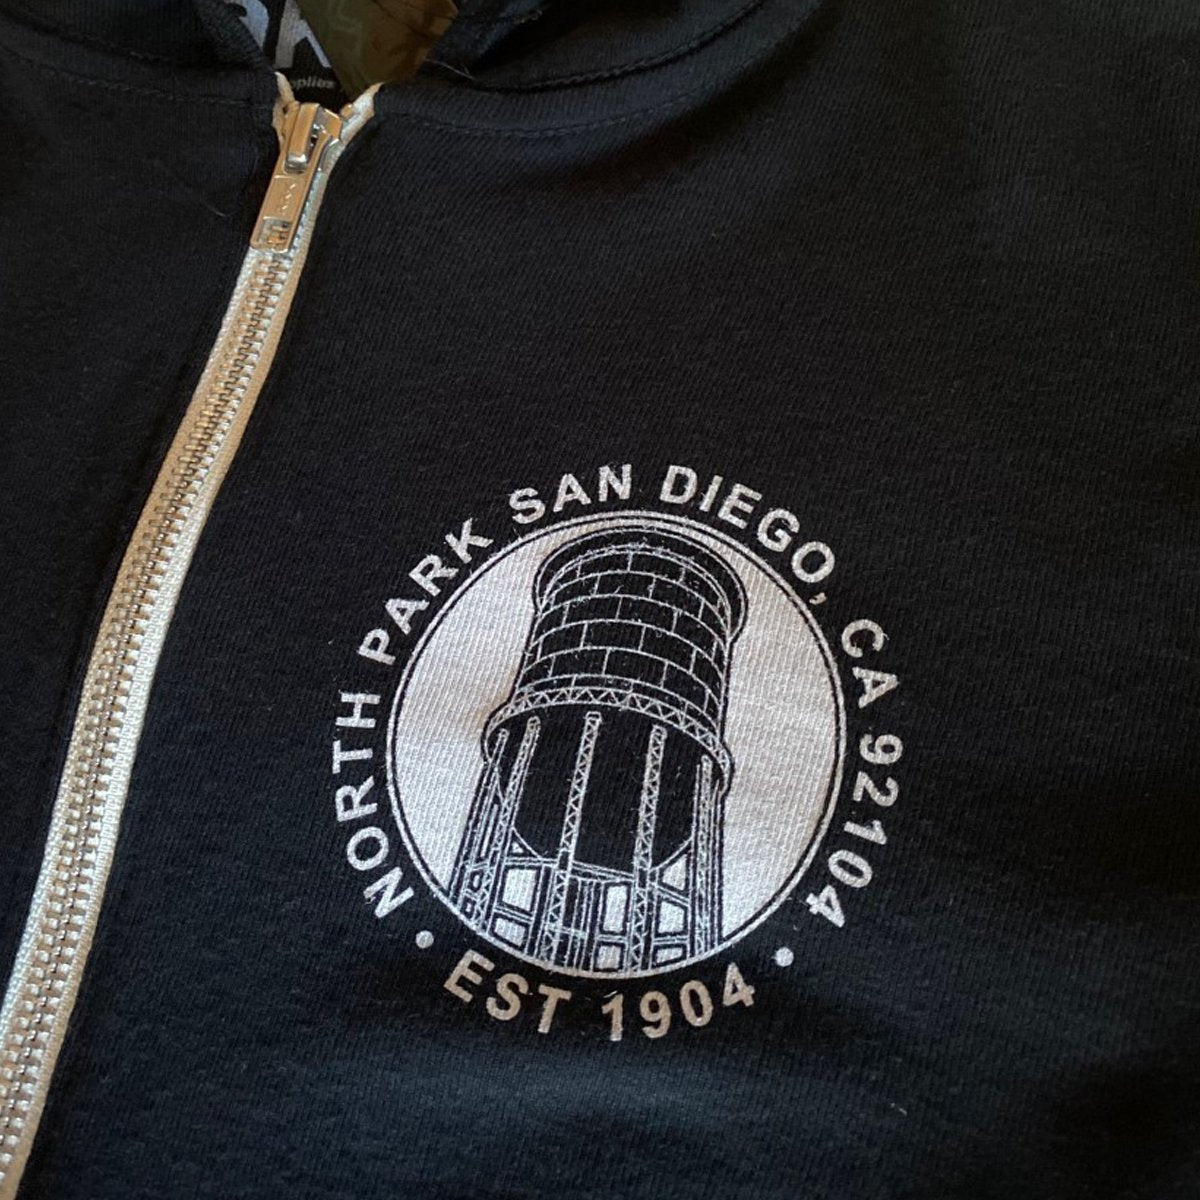 North Park Water Tower Zip Hoodie - [aka]